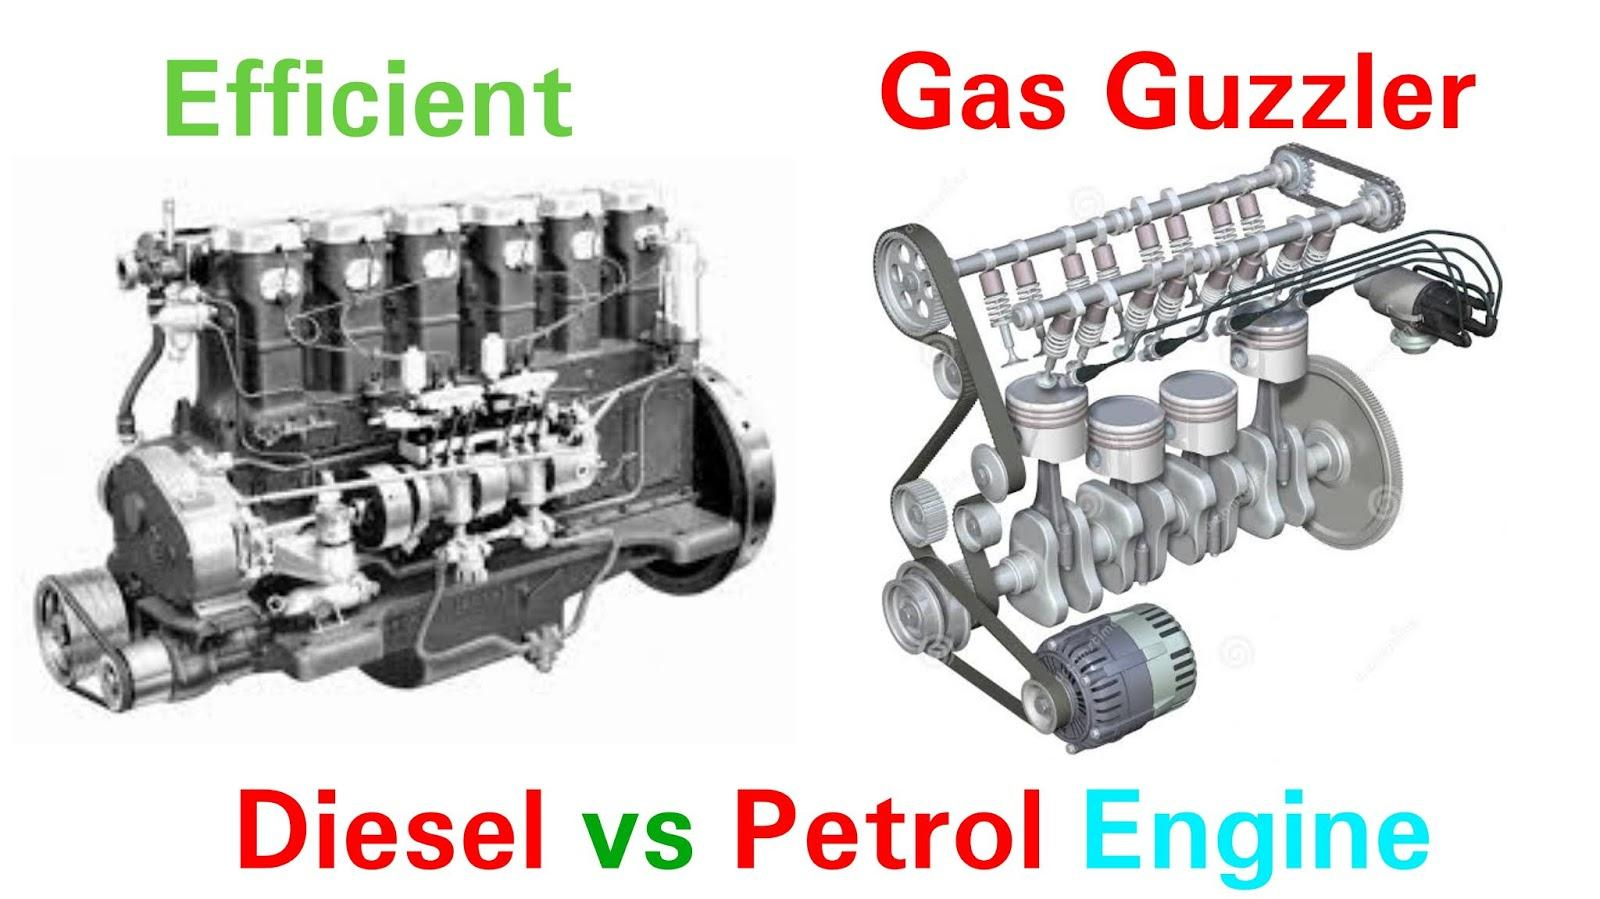 Which has more efficiency: Diesel engine or Petrol engines? please give reason for same.